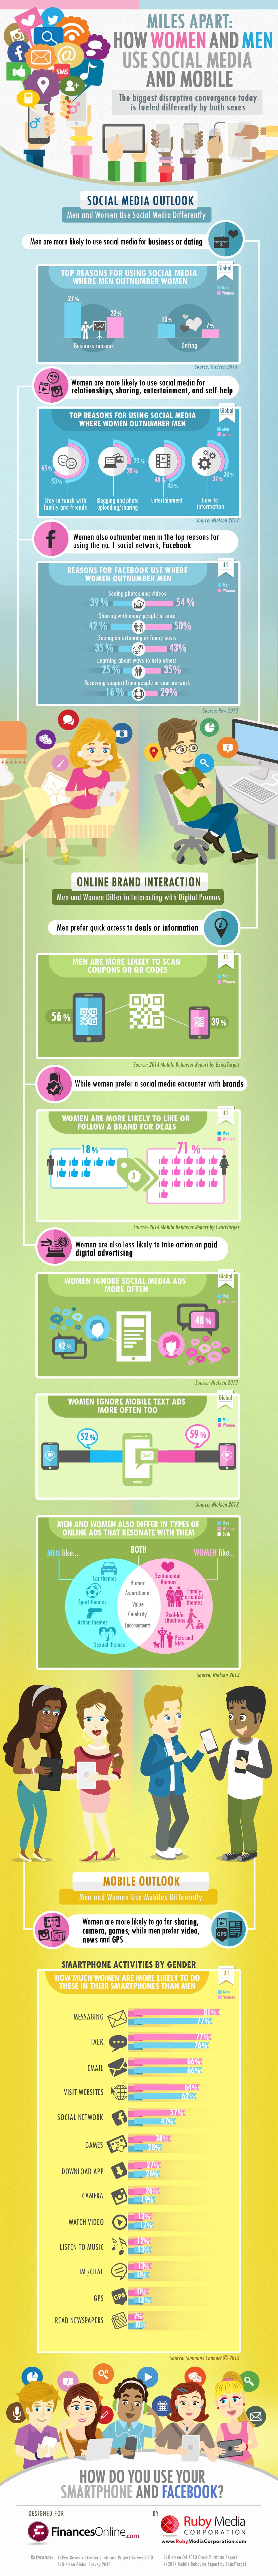 Men vs. Women on Facebook, Smartphones & Other Social Networks: Surprising Facts, Impact on Society and Marketing Statistics